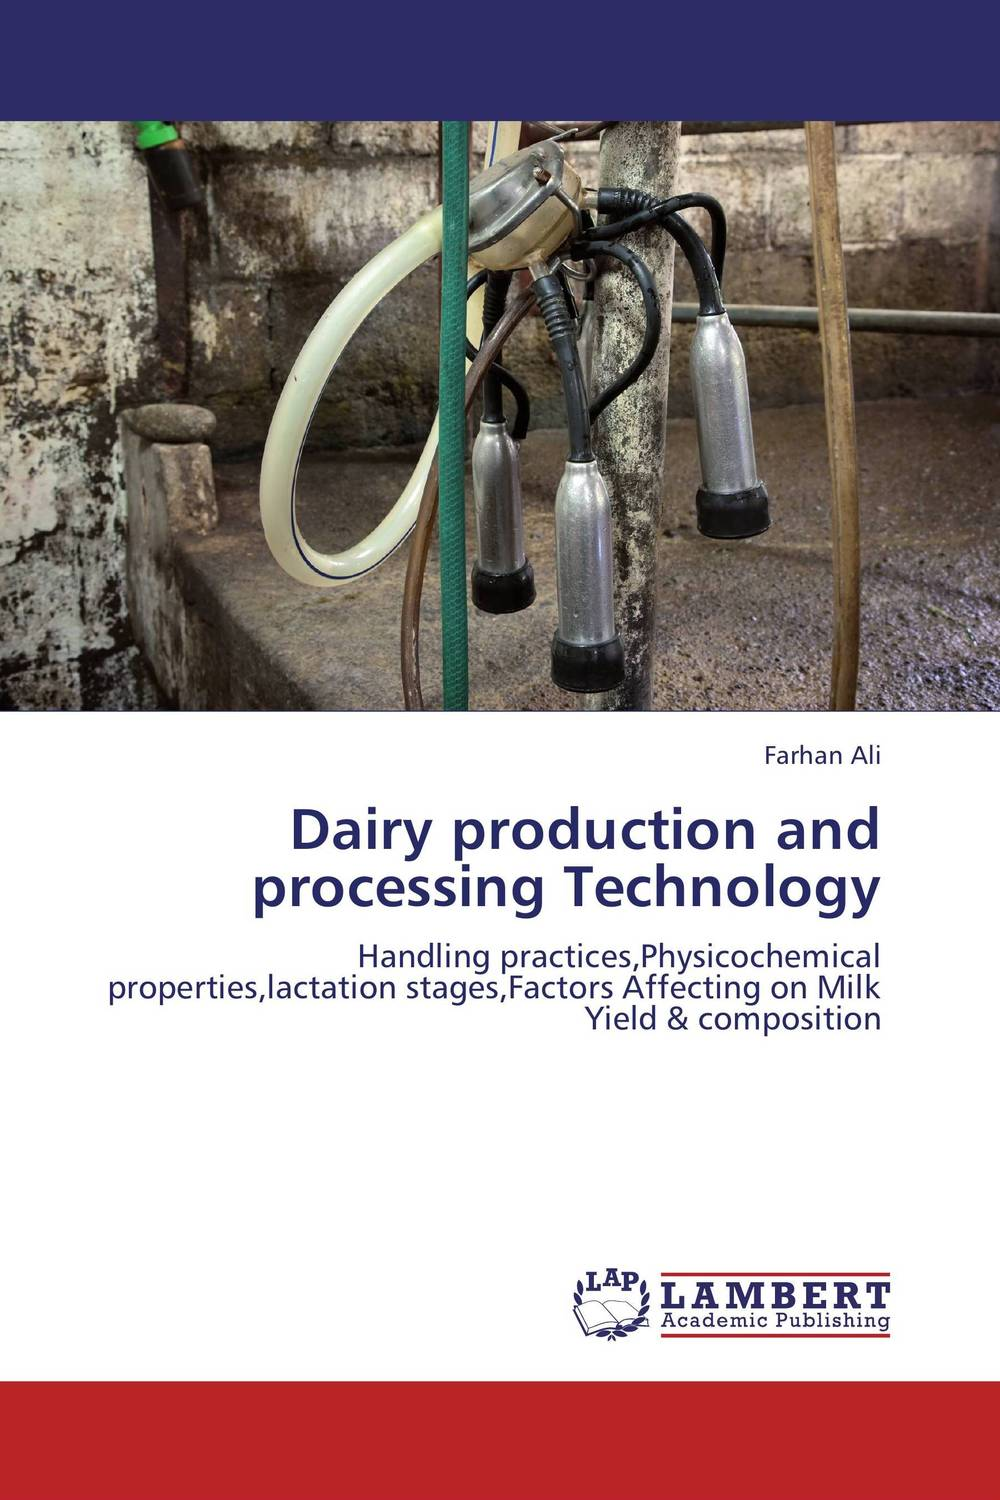 Dairy production and processing Technology